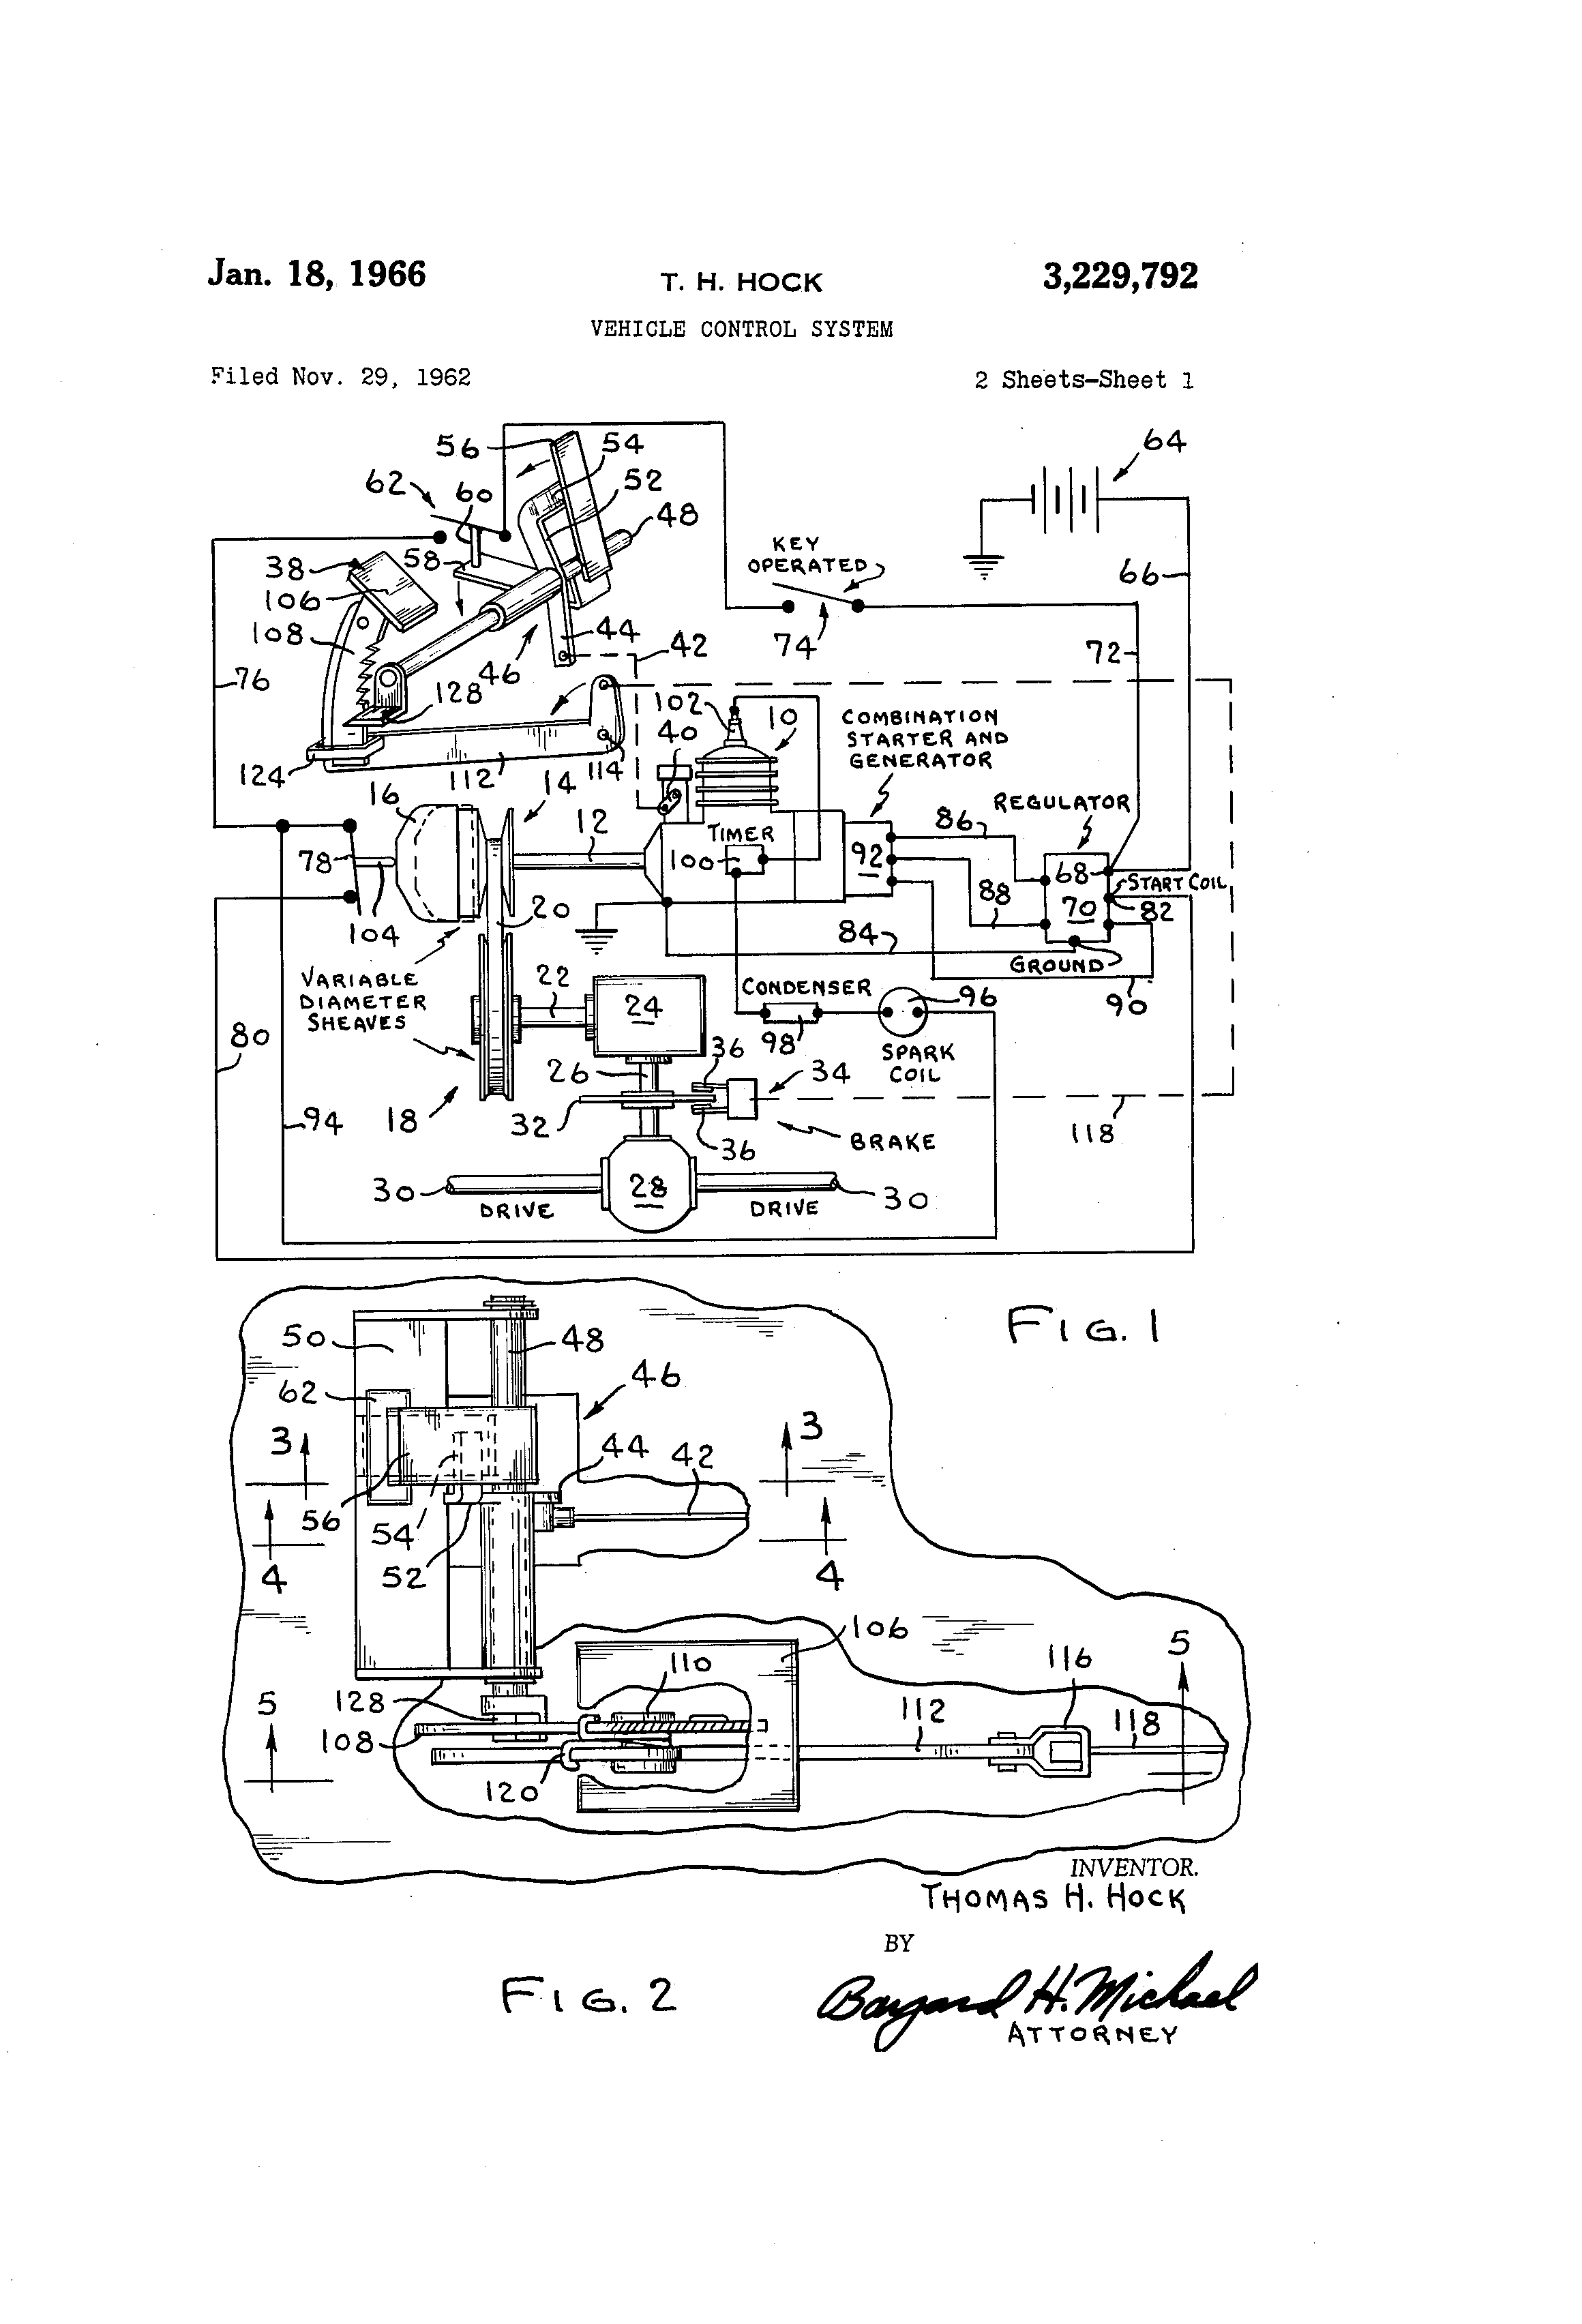 1988 Columbia Par Car Wiring Diagram : 36 Wiring Diagram